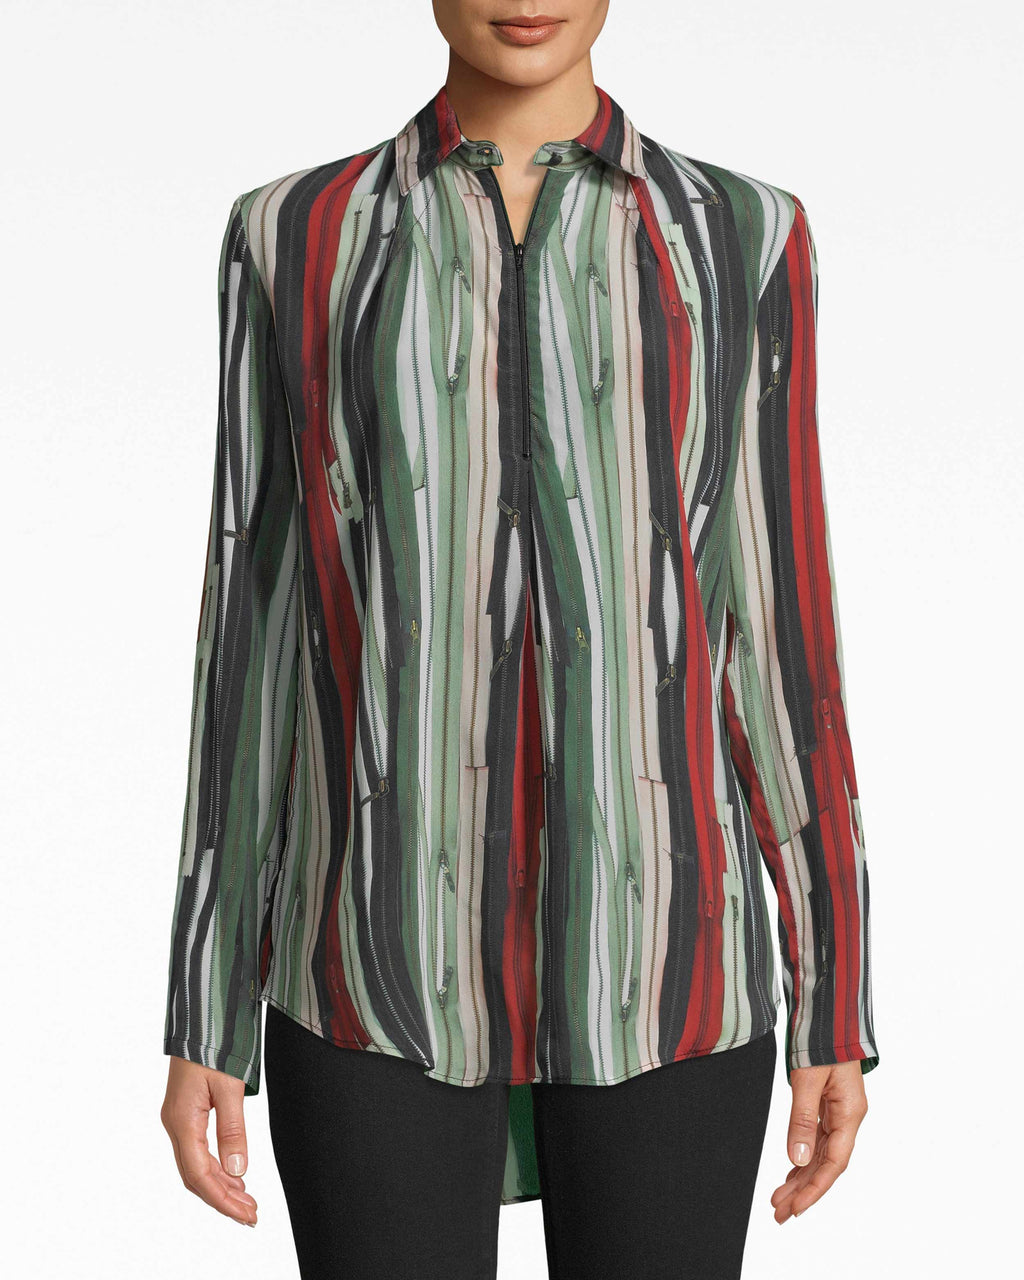 BE10392 - ZIPPER STRIPE ZIP FRONT BOYFRIEND BLOUSE - tops - blouses - Signed, zipped, yours. This boyfriend blouse is everything zipper: the print is the groundwork for the tiny zipper details. A small button closes the spread collar.